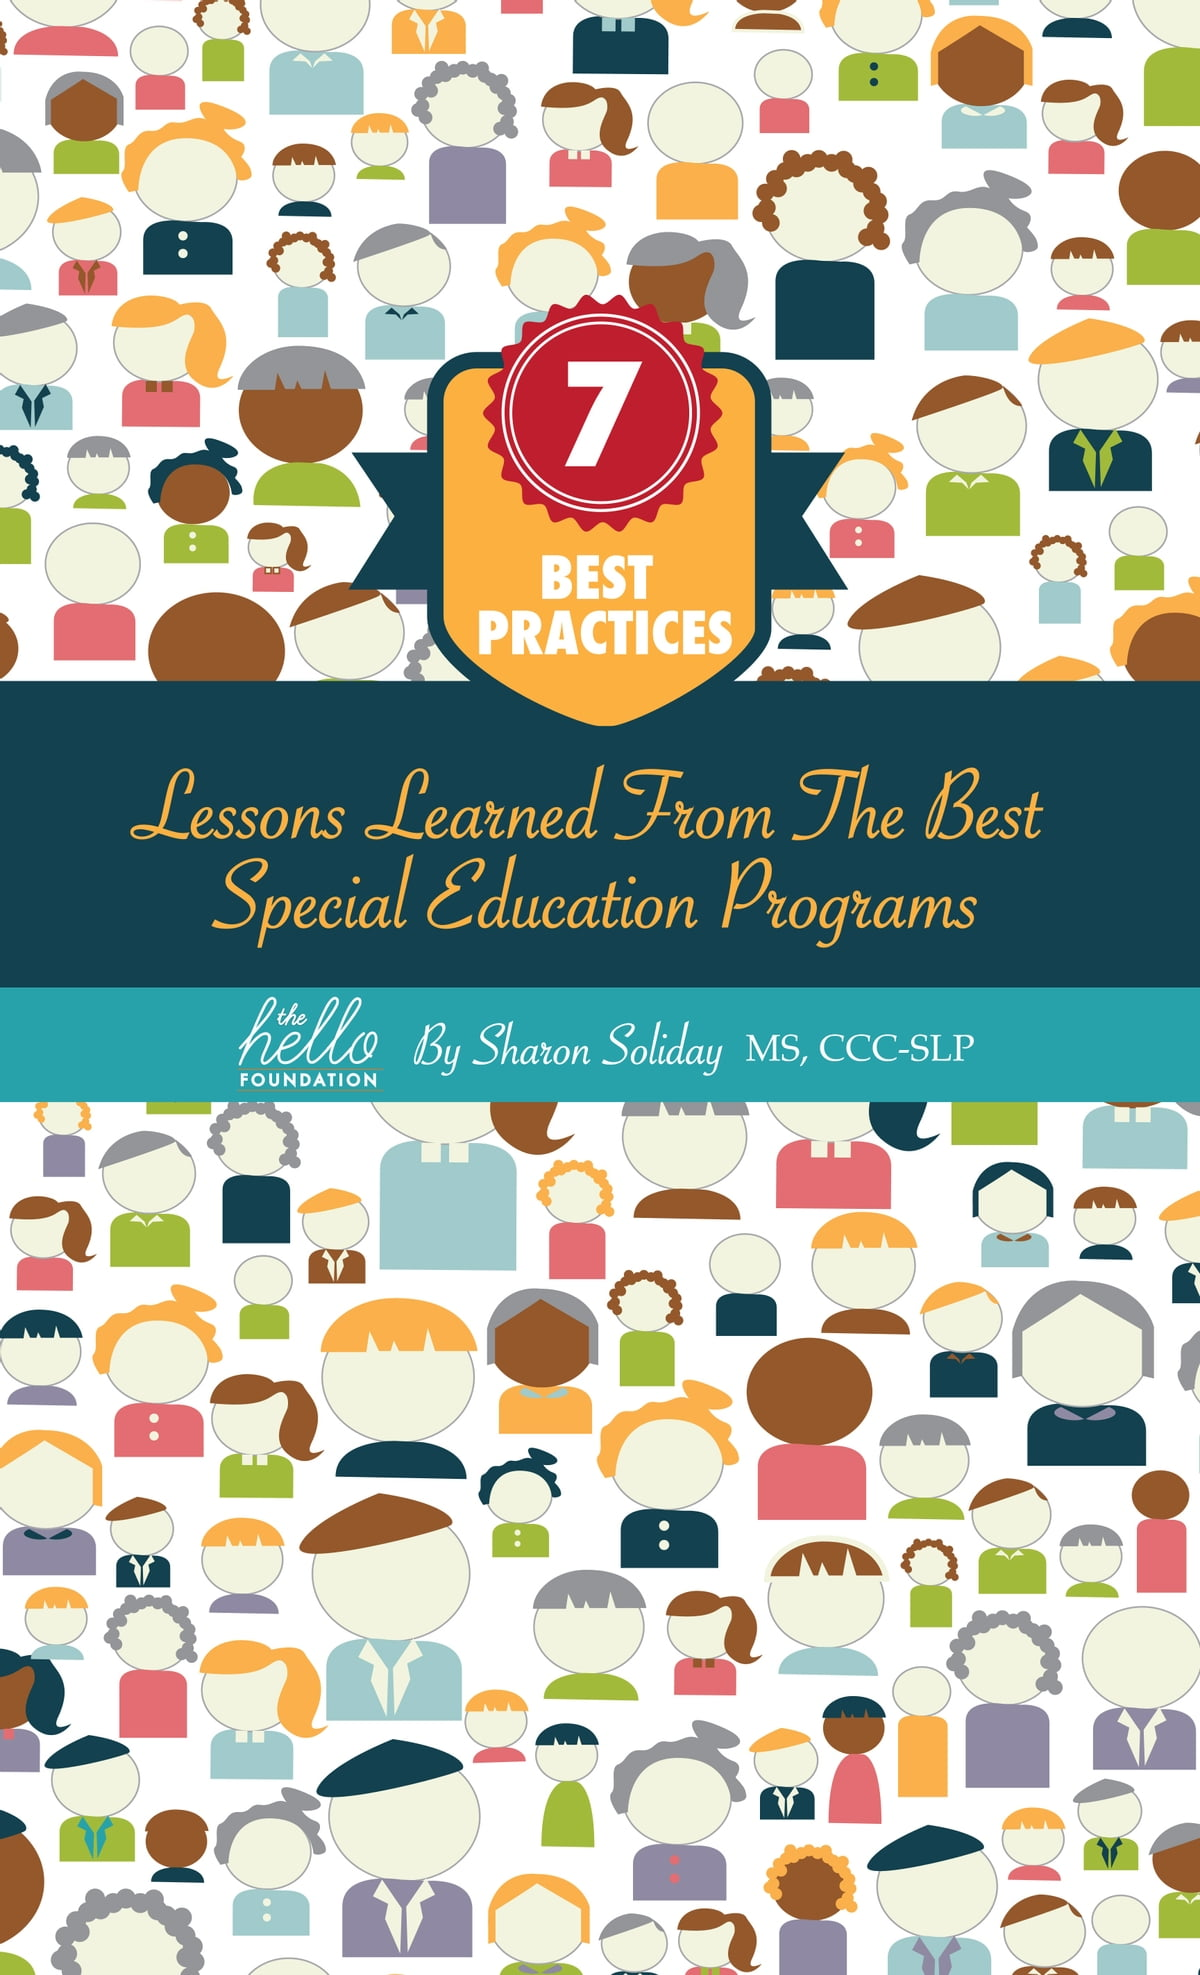 Special Education Best Practices And >> 7 Best Practices Lessons Learned From The Best Special Education